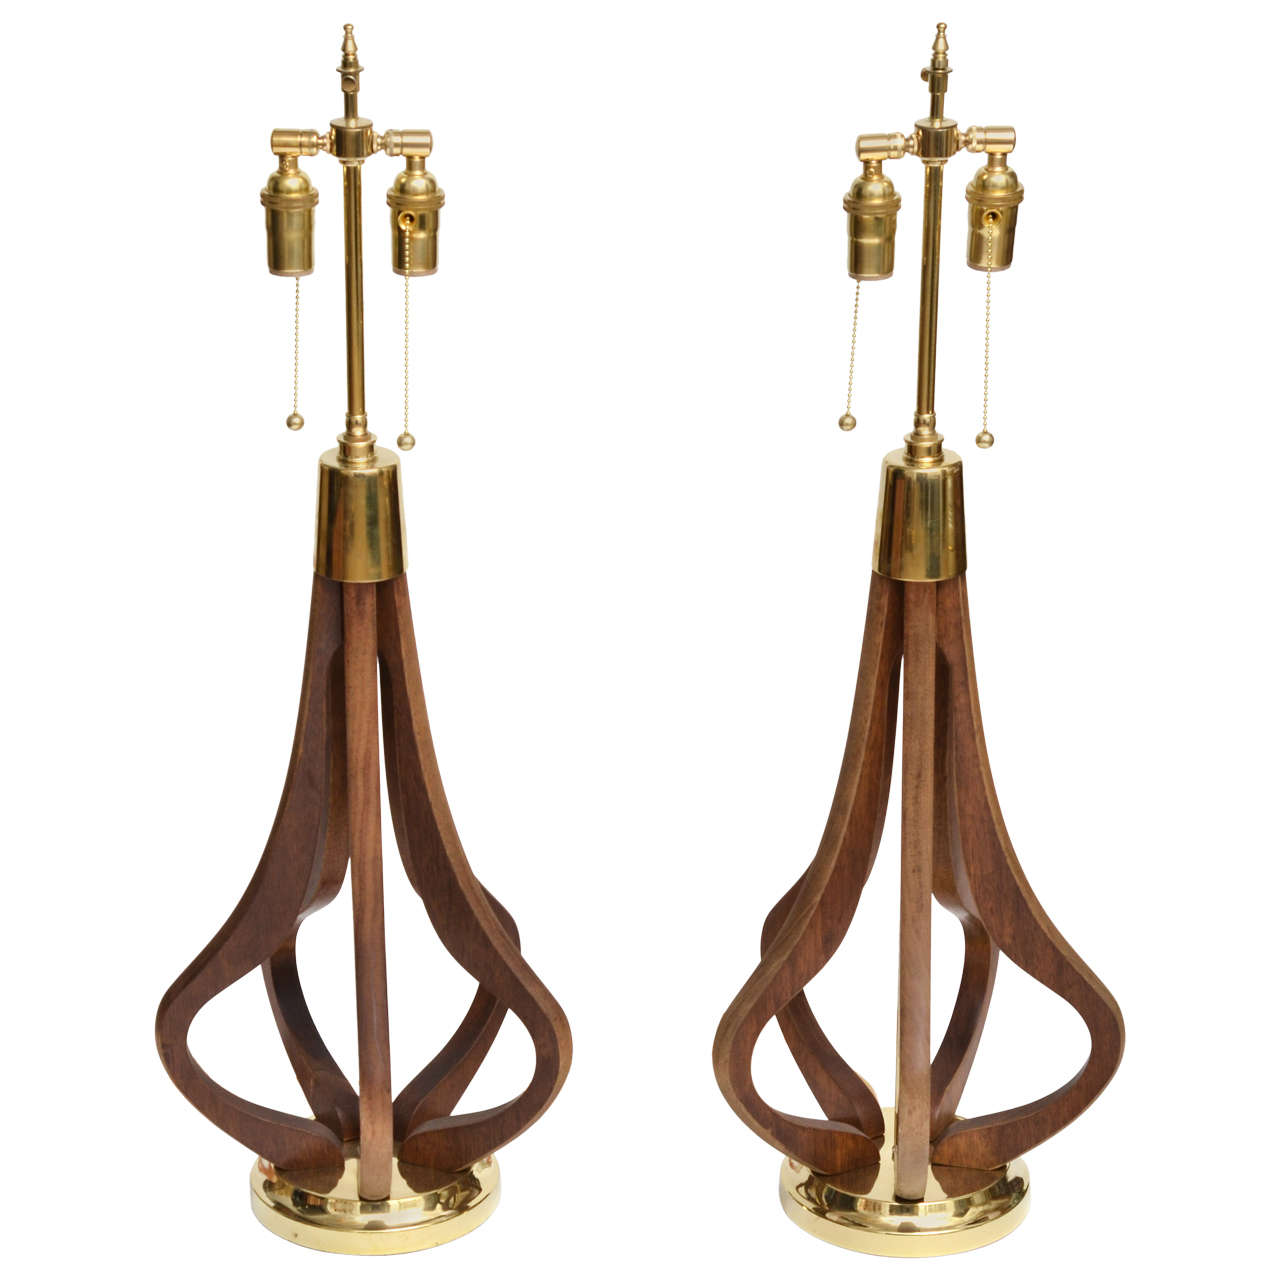 Pair of Bulb Form Wood and Brass Table Lamps